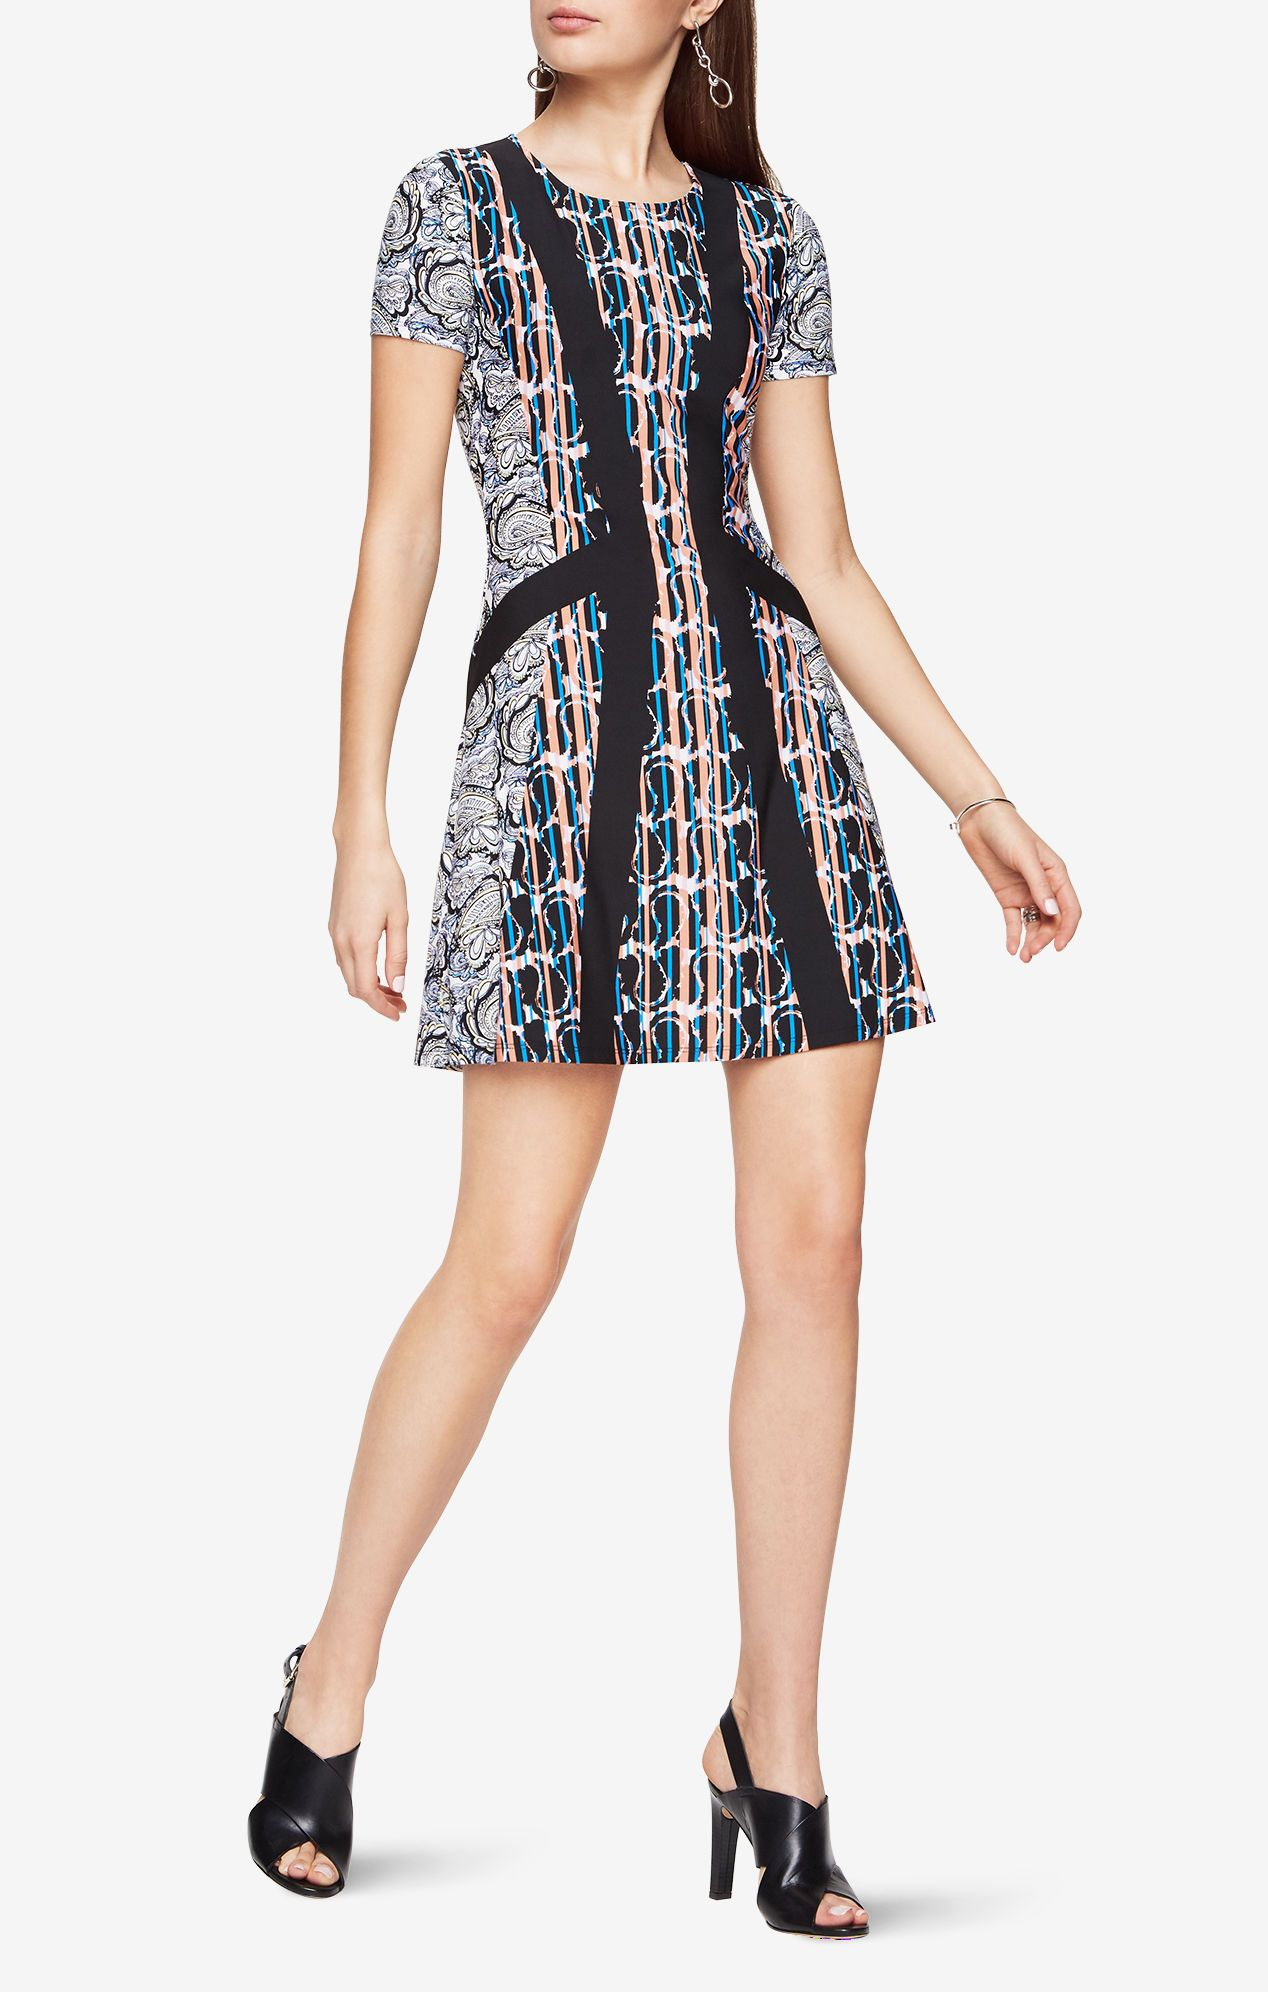 BCBG Max Azria Aleah Paisley Print Dress | Make a statement with print in this short-sleeve silhouette, complete with ink-inspired paisley patterns on stretch matte-jersey for the ultimate approach to office chic.